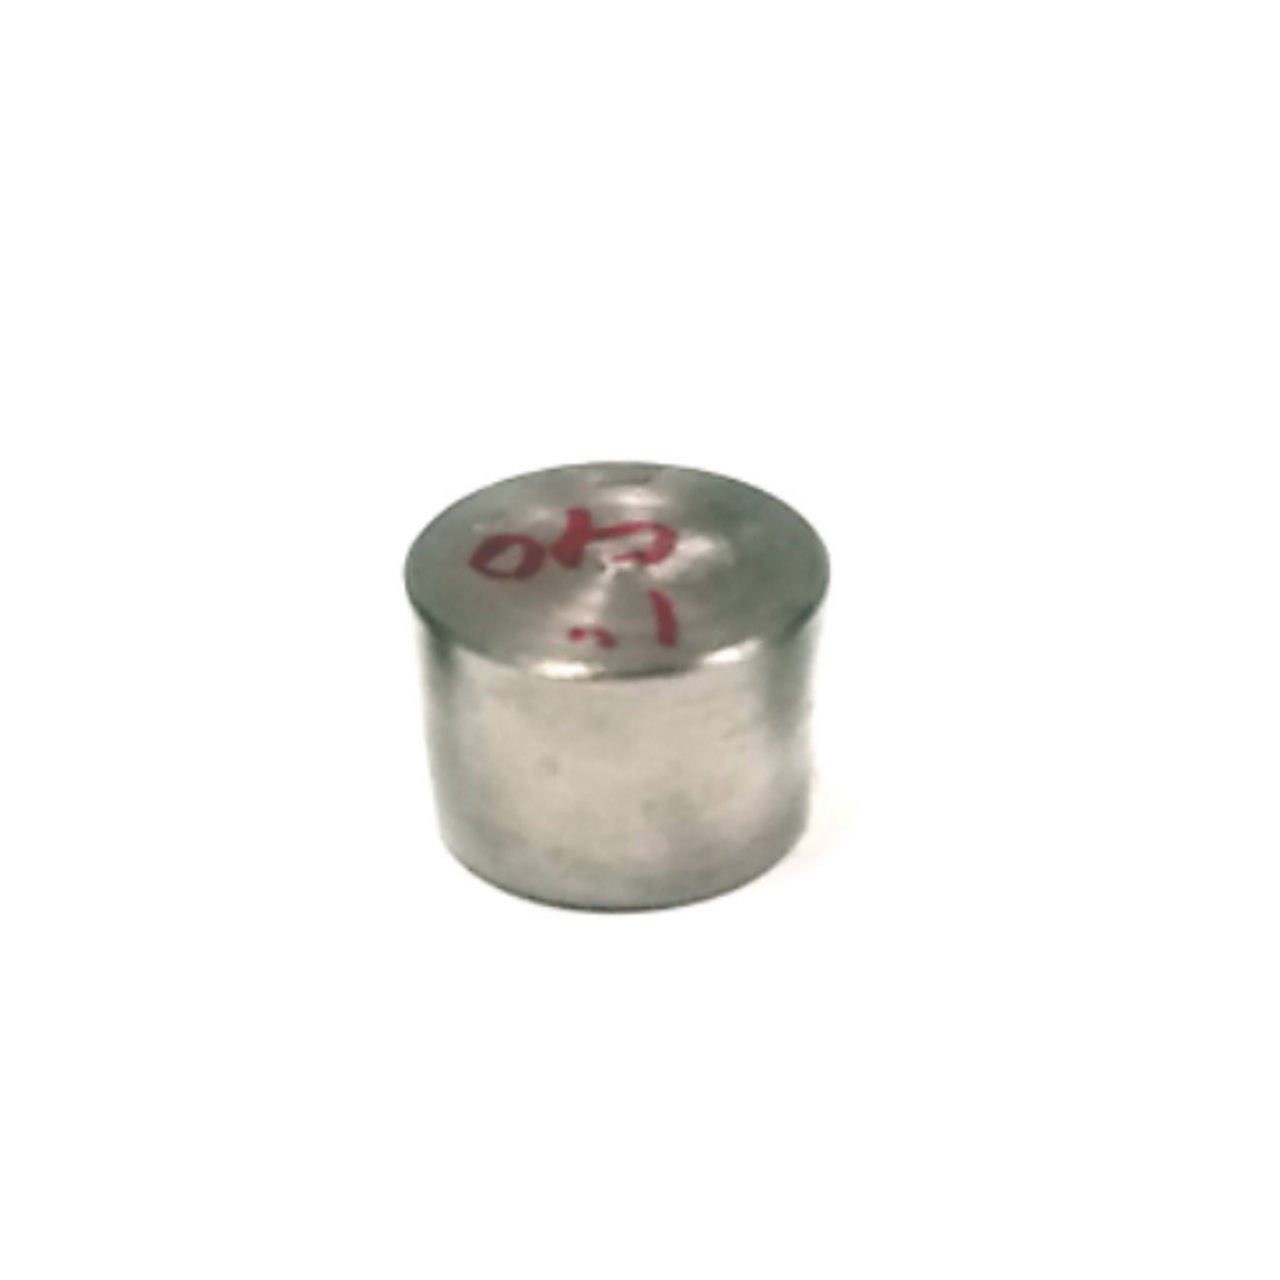 1018 mild steel weld plugs to permanently seal off gas services or pipe ends. Quickly abandon pipe ends. Weld into place in minutes. Perfect for service cut offs.